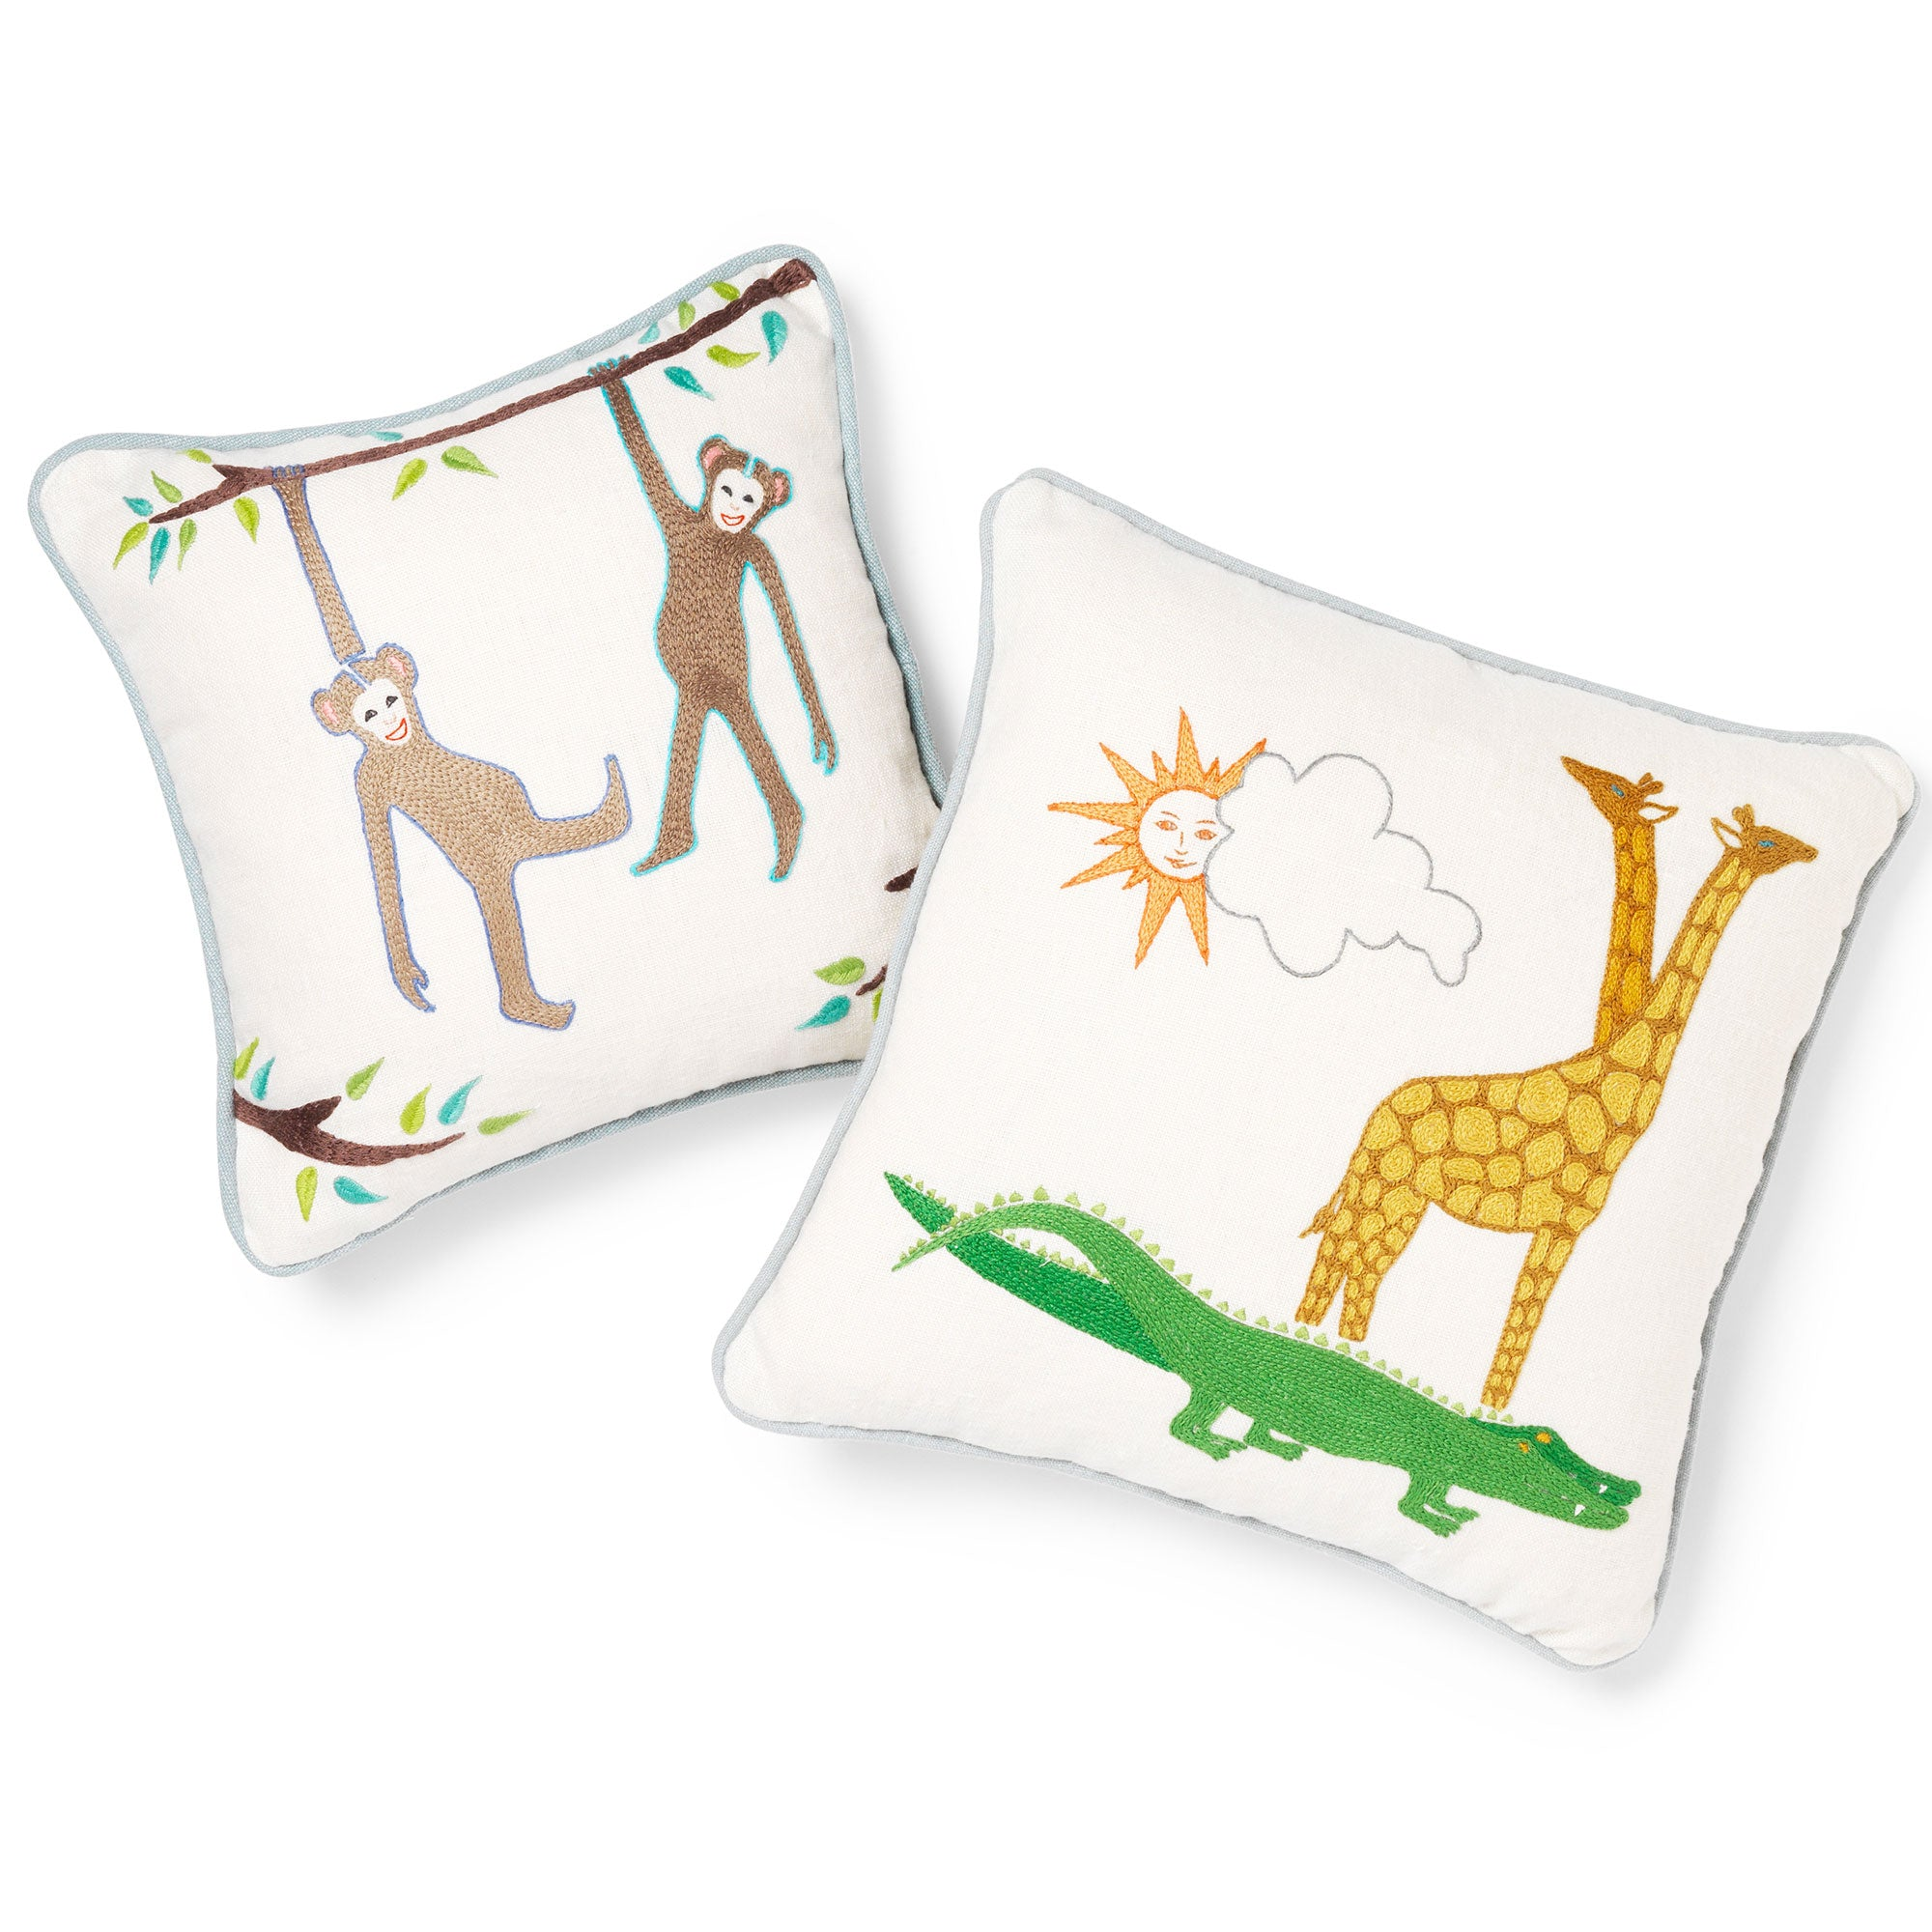 Noah's Ark Hand-Embroidered Crocodile and Giraffe Cushion Marion Rhoades for Fine Cell Work